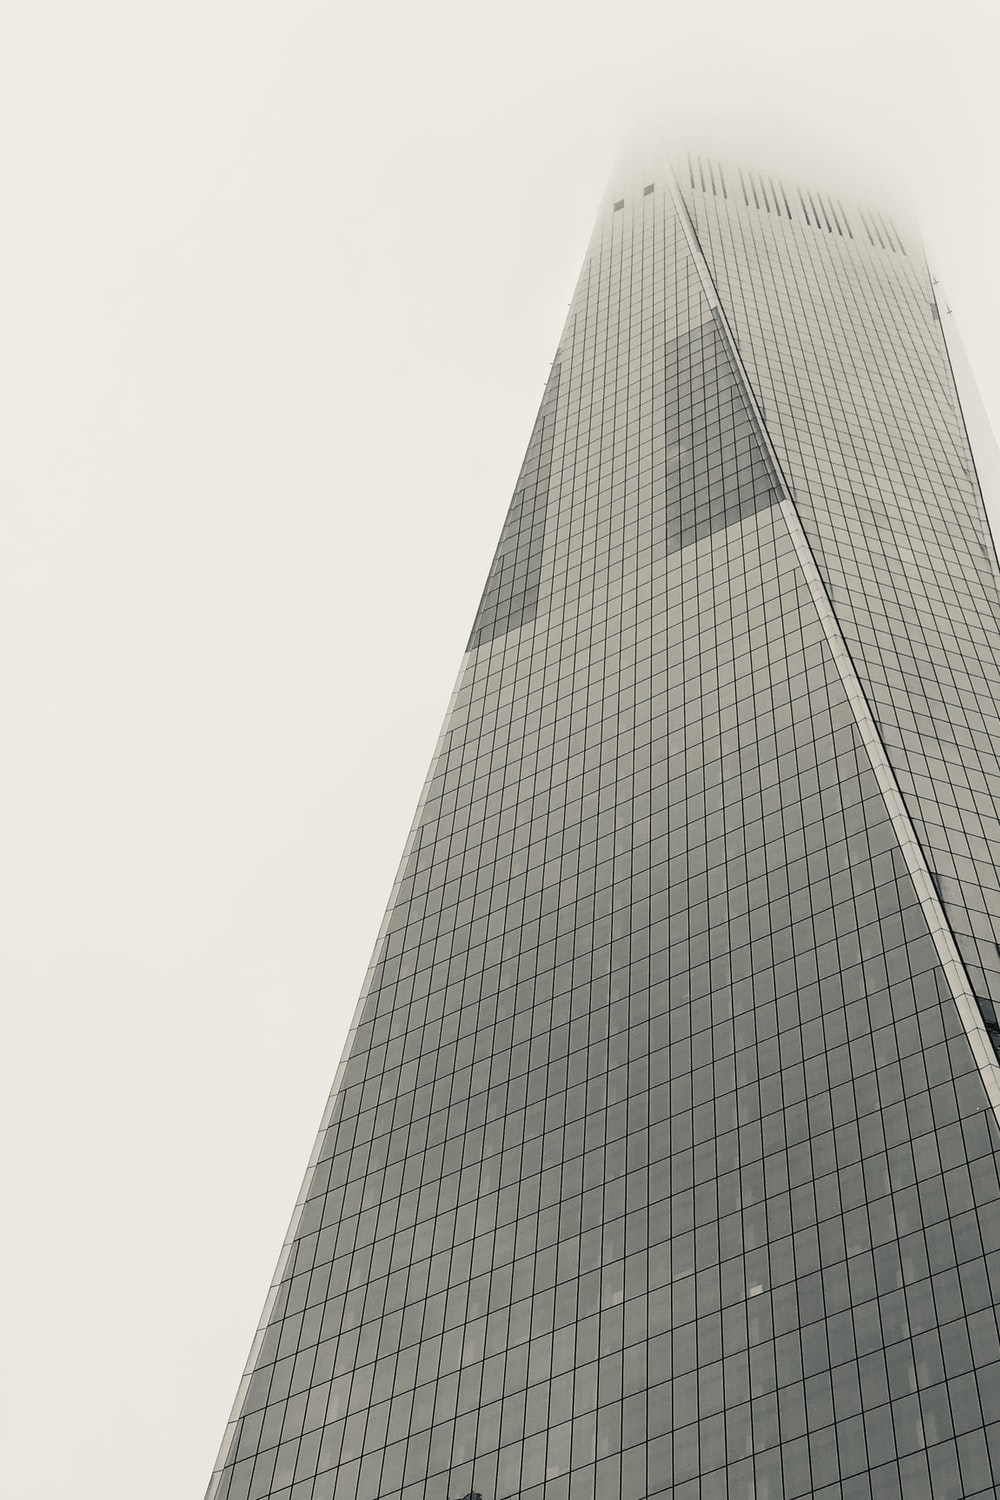 low-angle photography of glass high-rise building